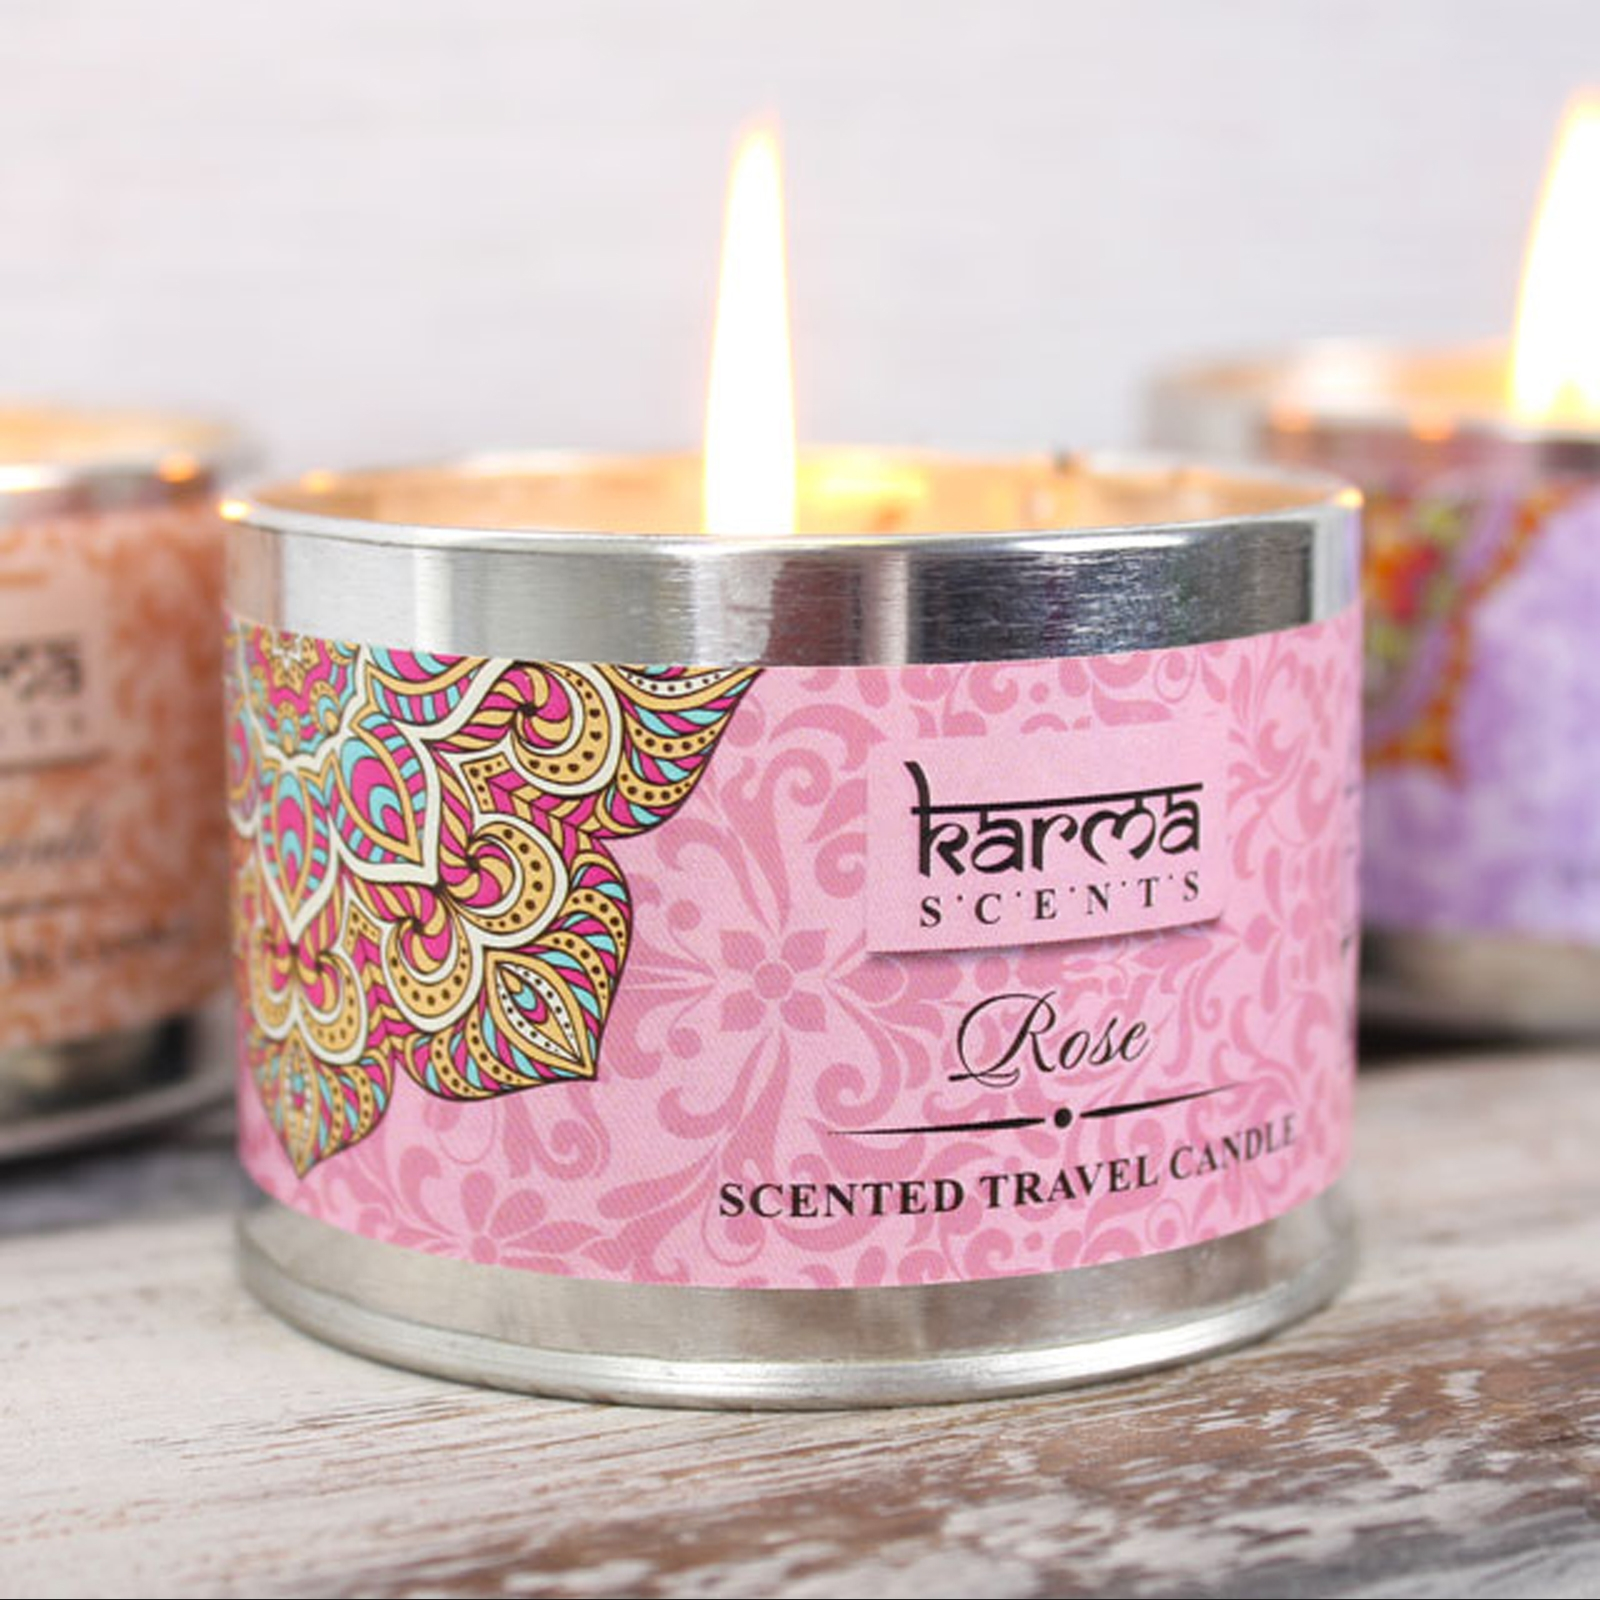 Karma Scents 6pk Candles